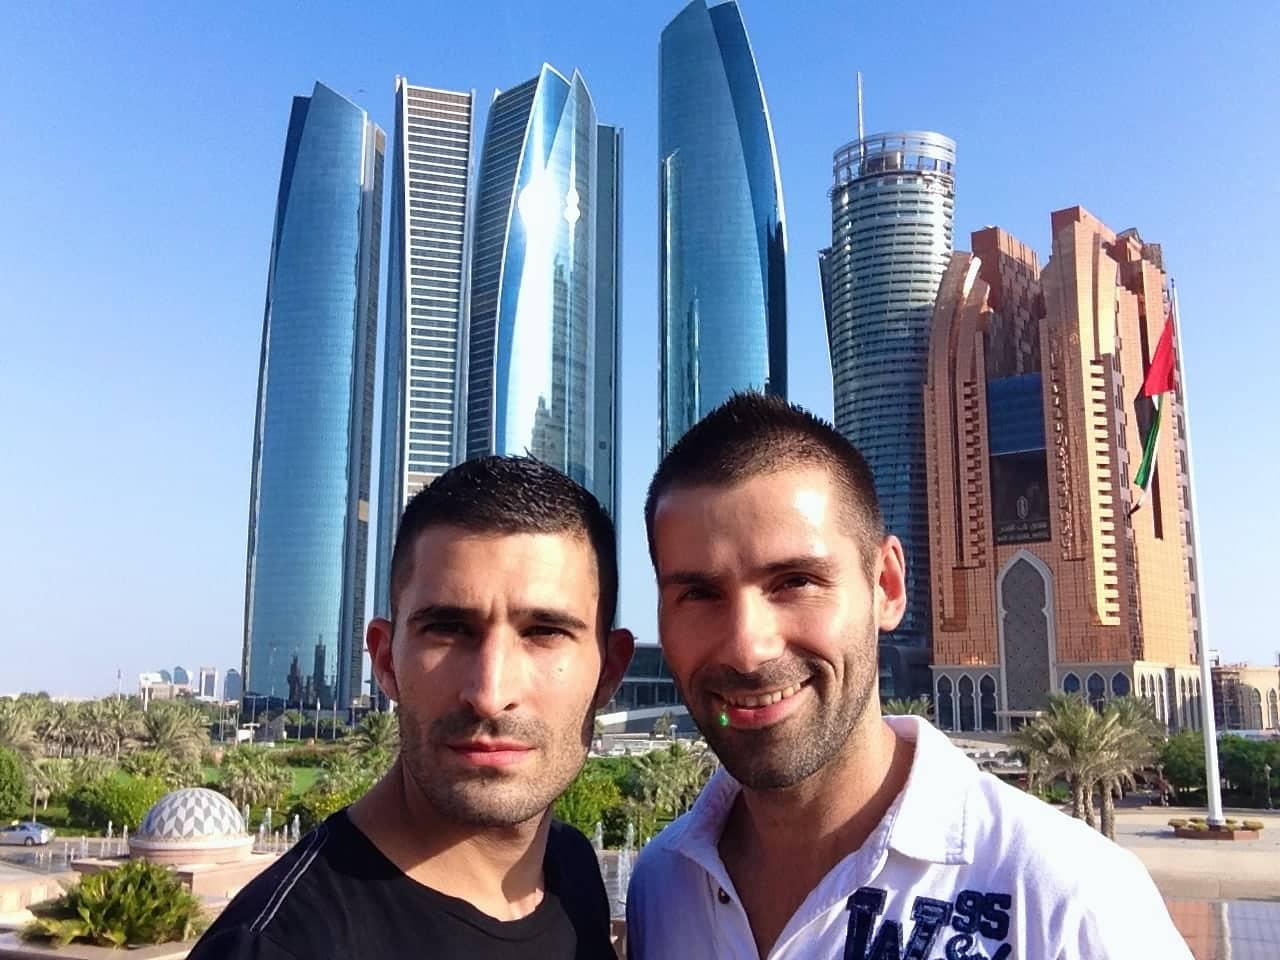 travelling as a gay couple in the UAE